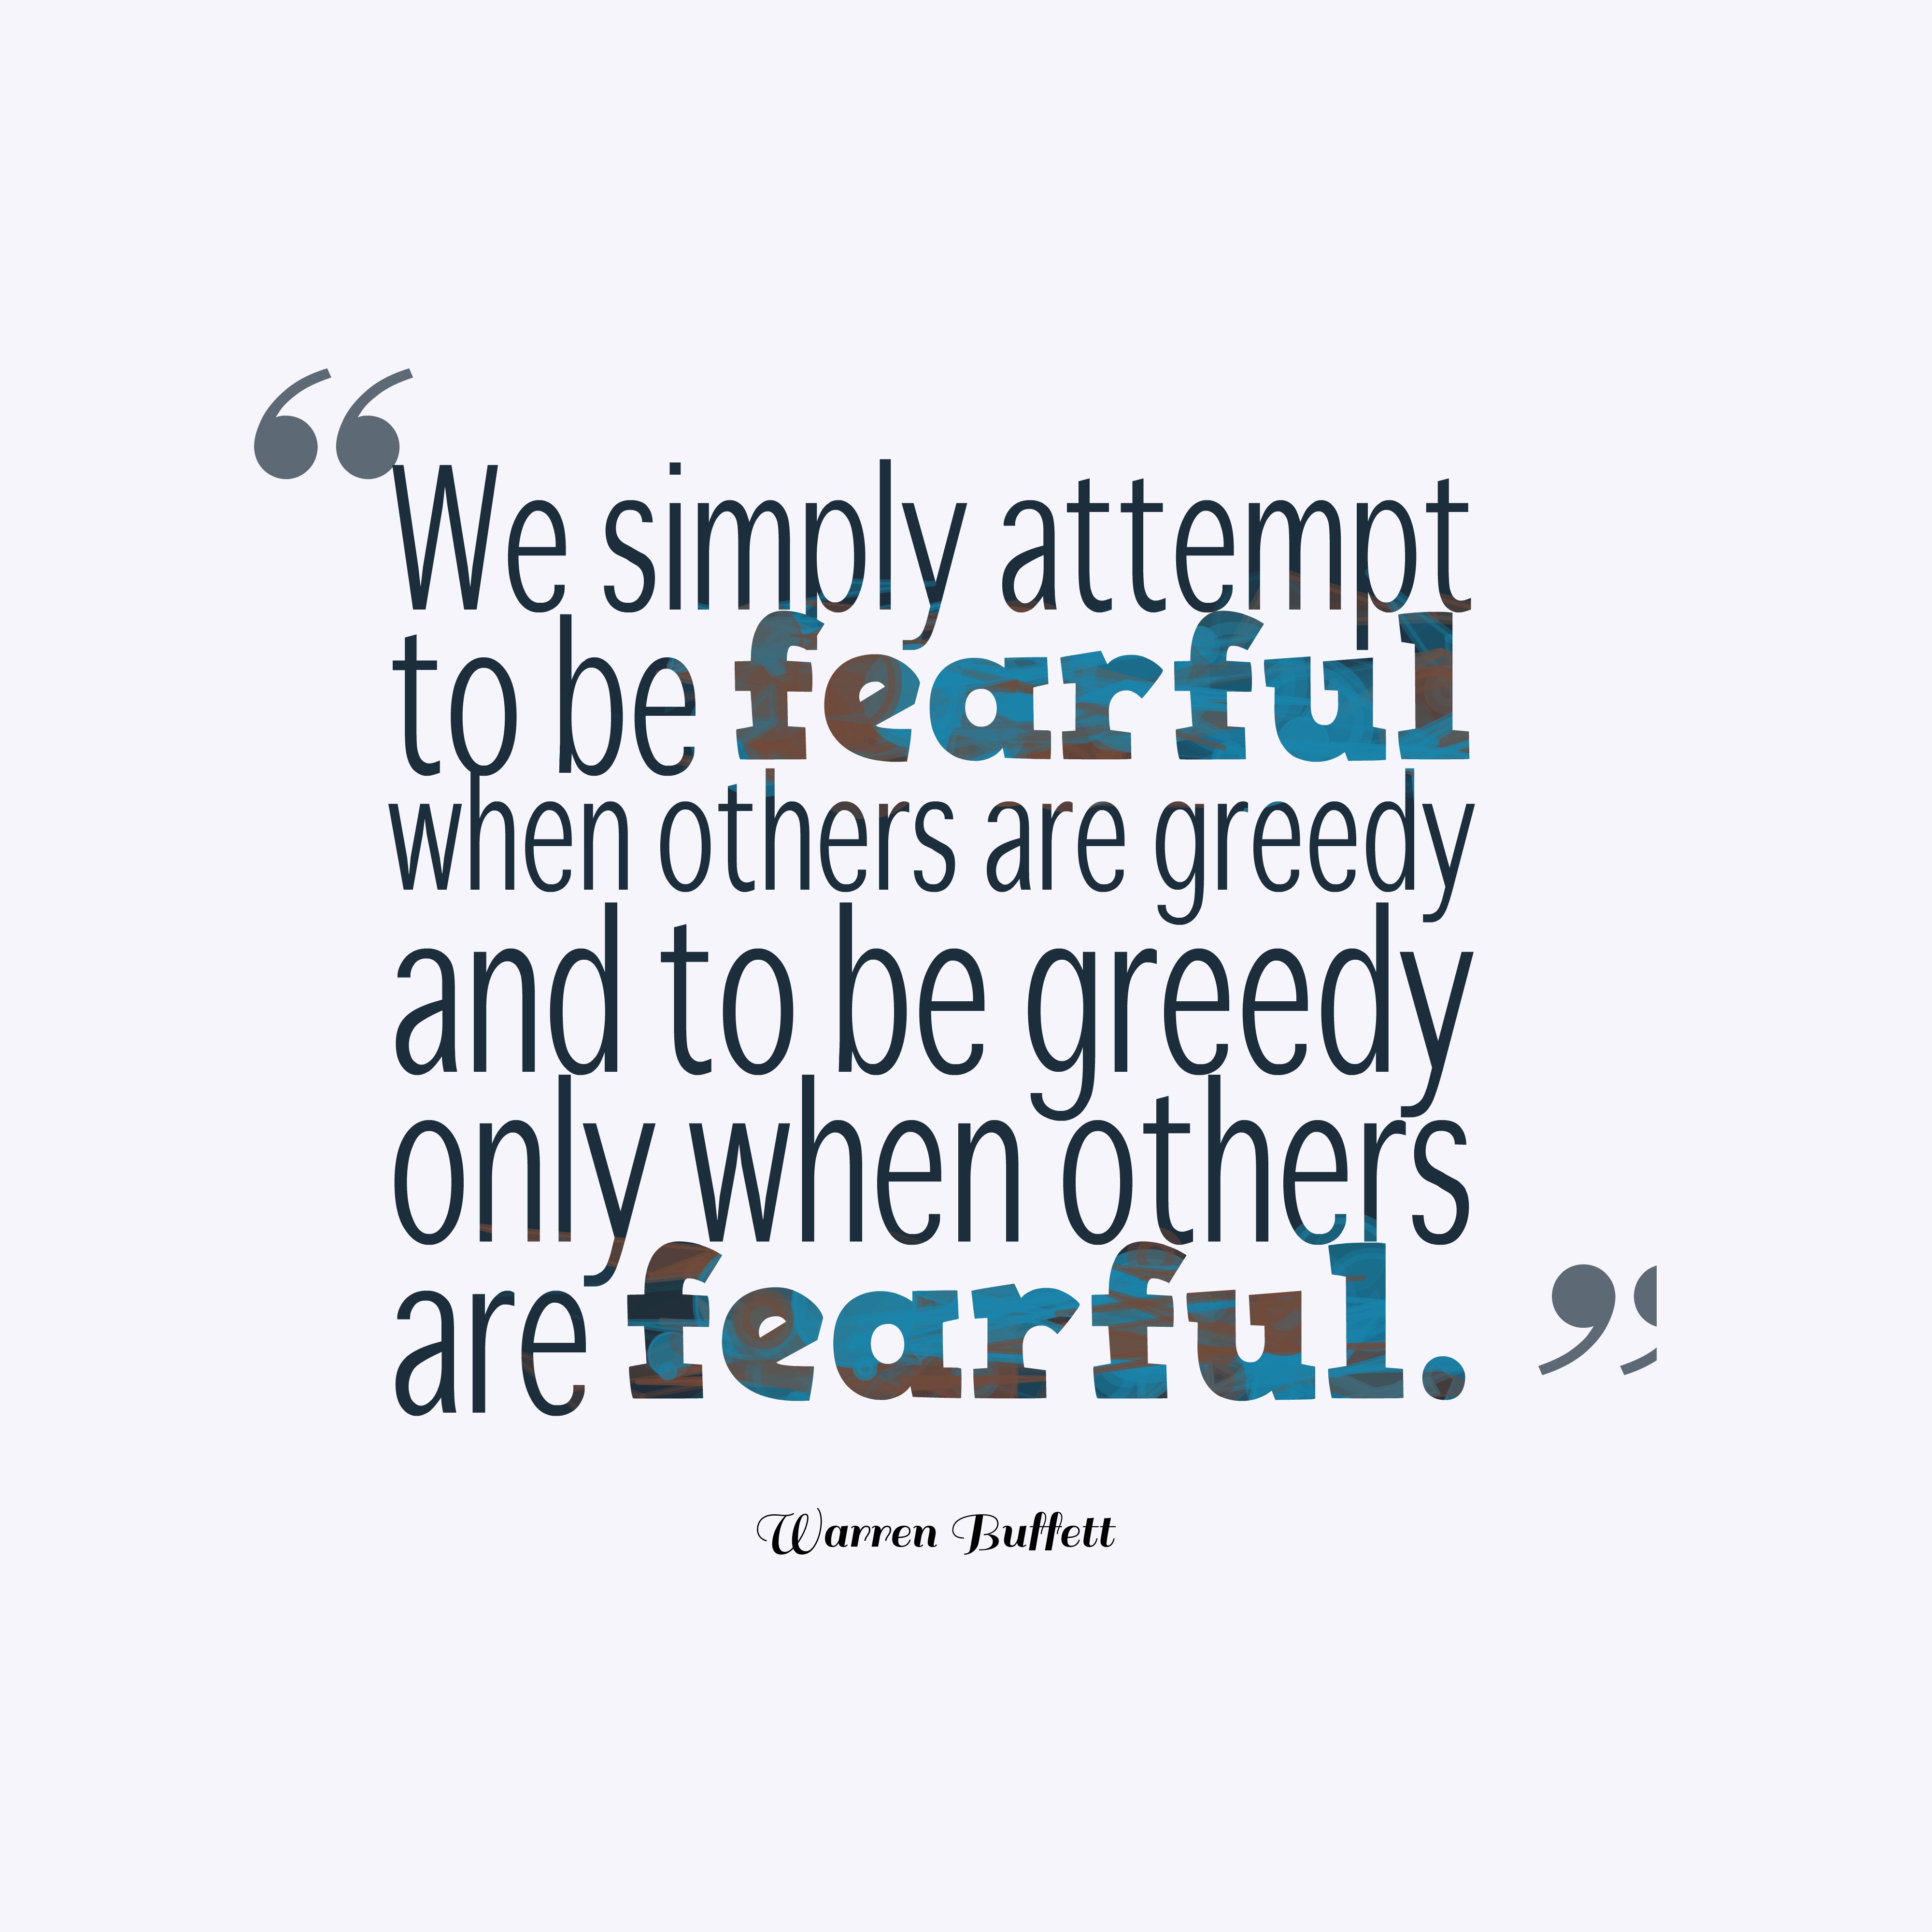 Quotes image of We simply attempt to be fearful when others are greedy and to be greedy only when others are fearful.